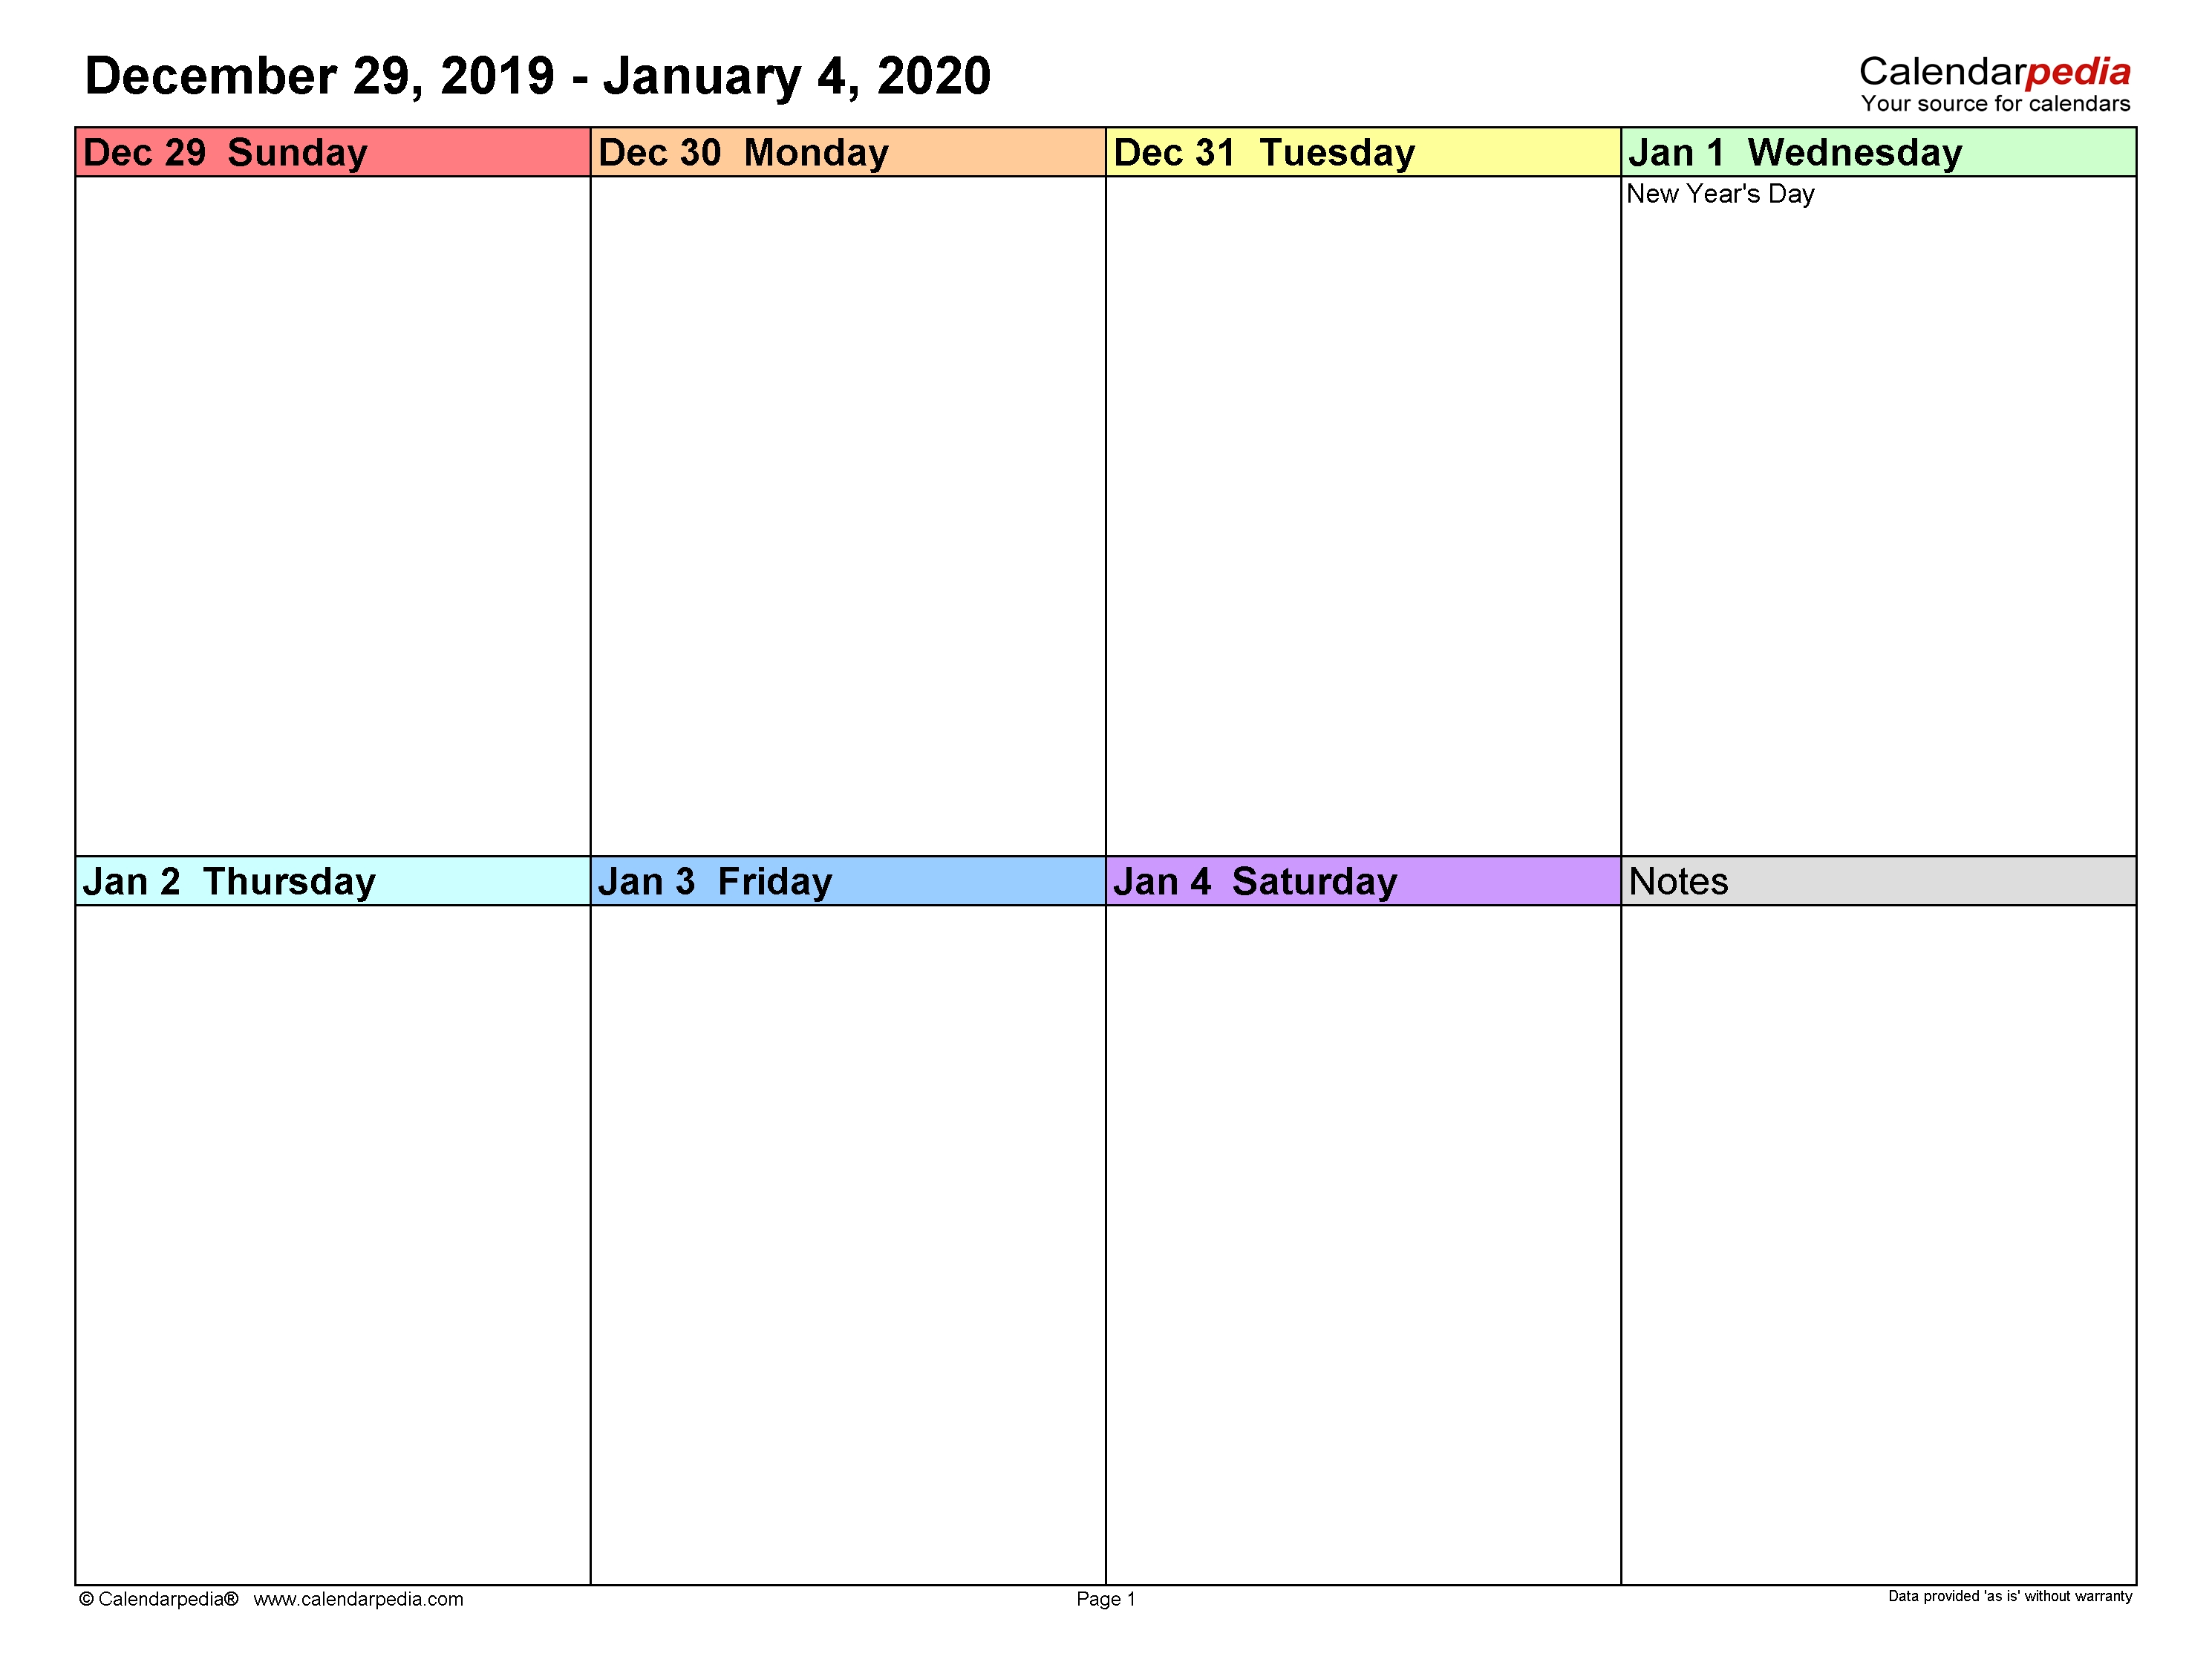 Weekly Calendars 2020 For Word - 12 Free Printable Templates 7 Day Calendar Template Free